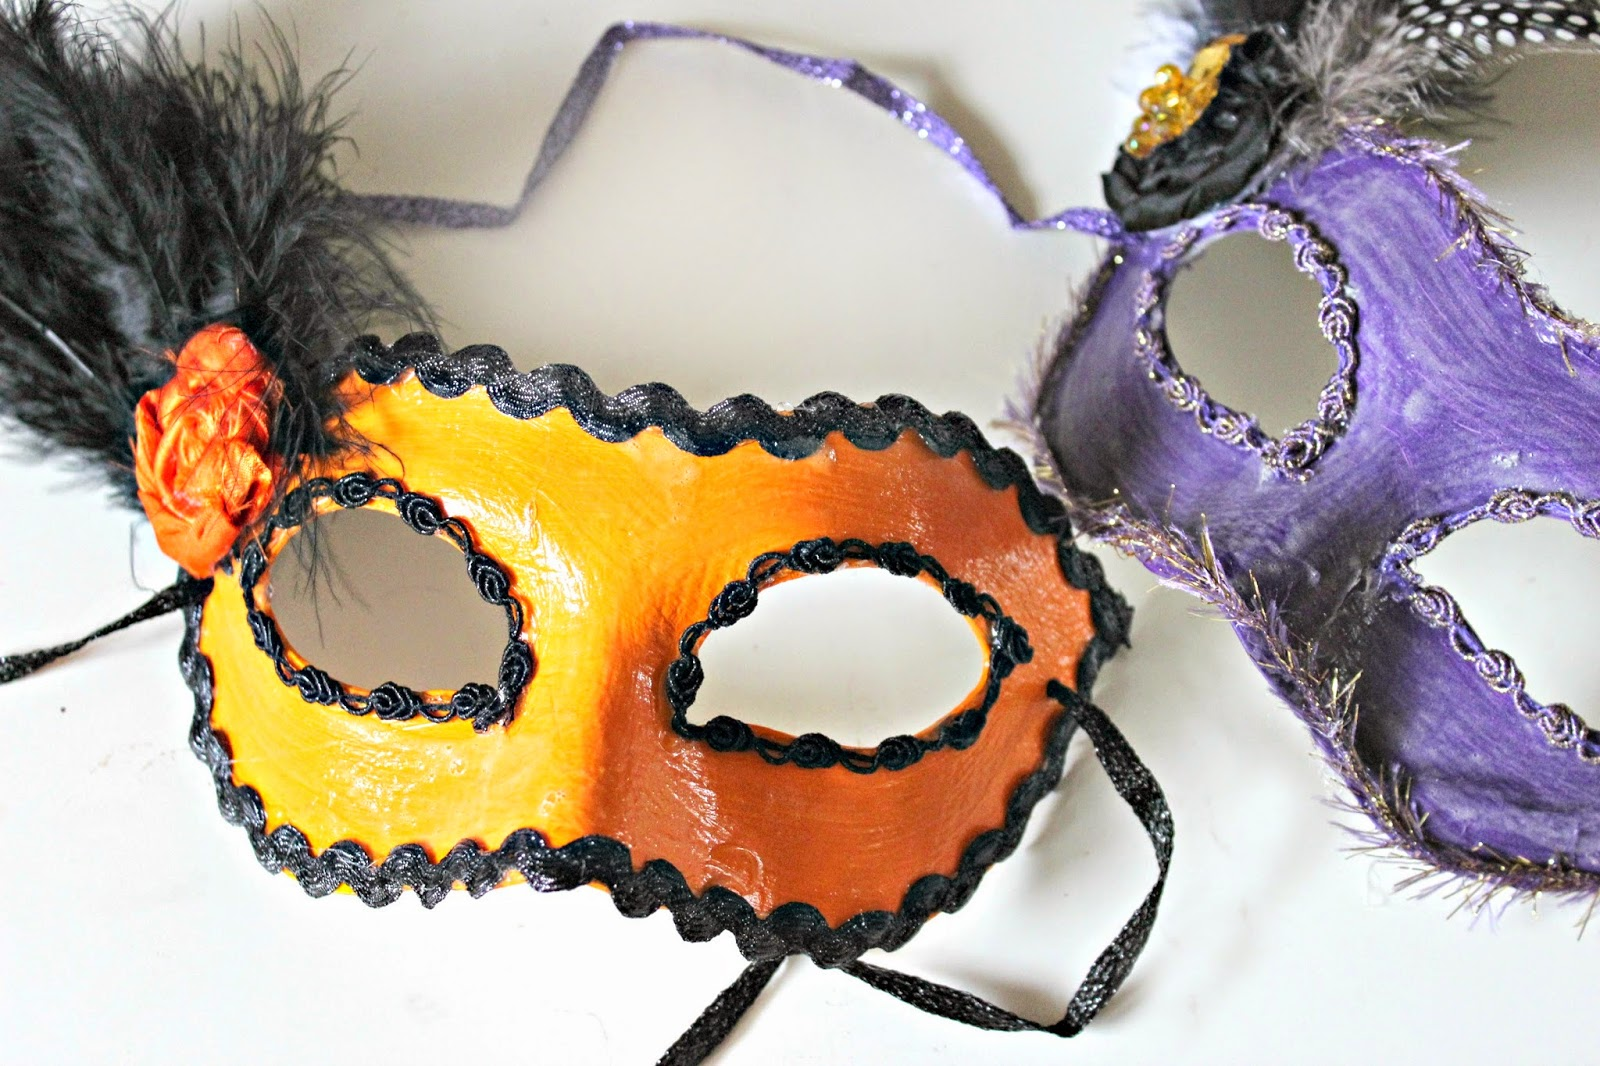 halloween masks mod podge craft